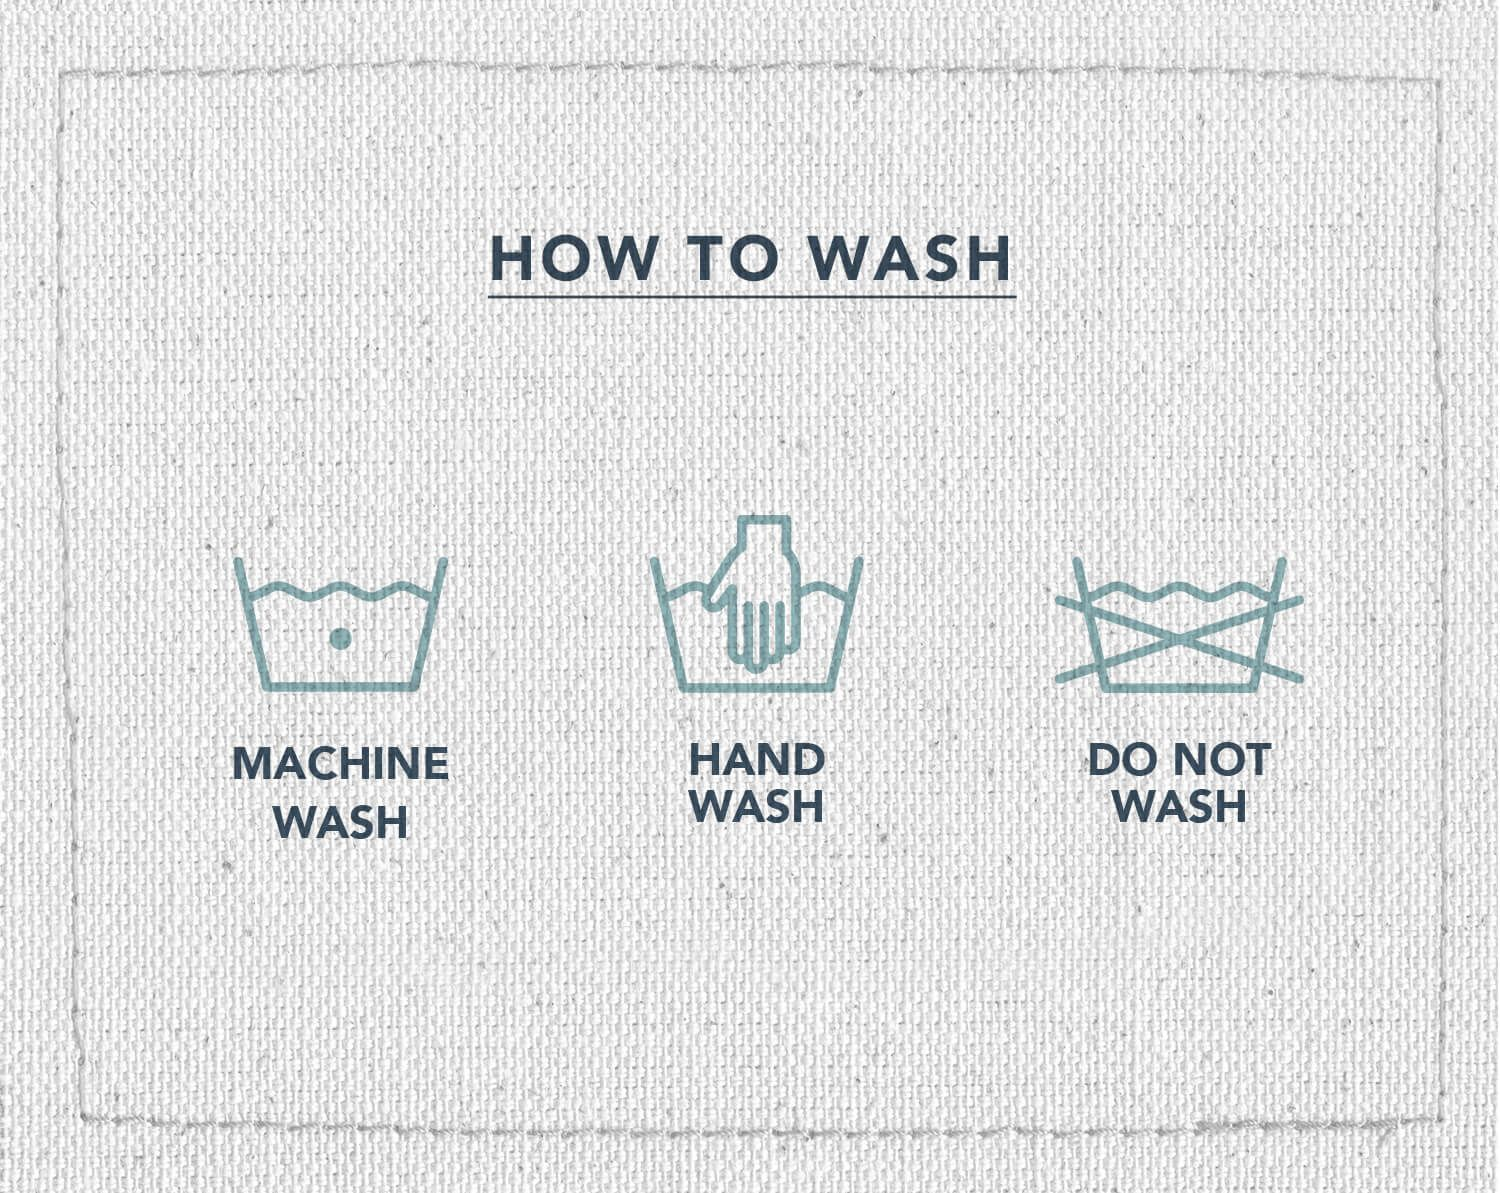 An infographic of three laundry care symbols, indicating what symbol means machine wash, hand wash, and do not wash